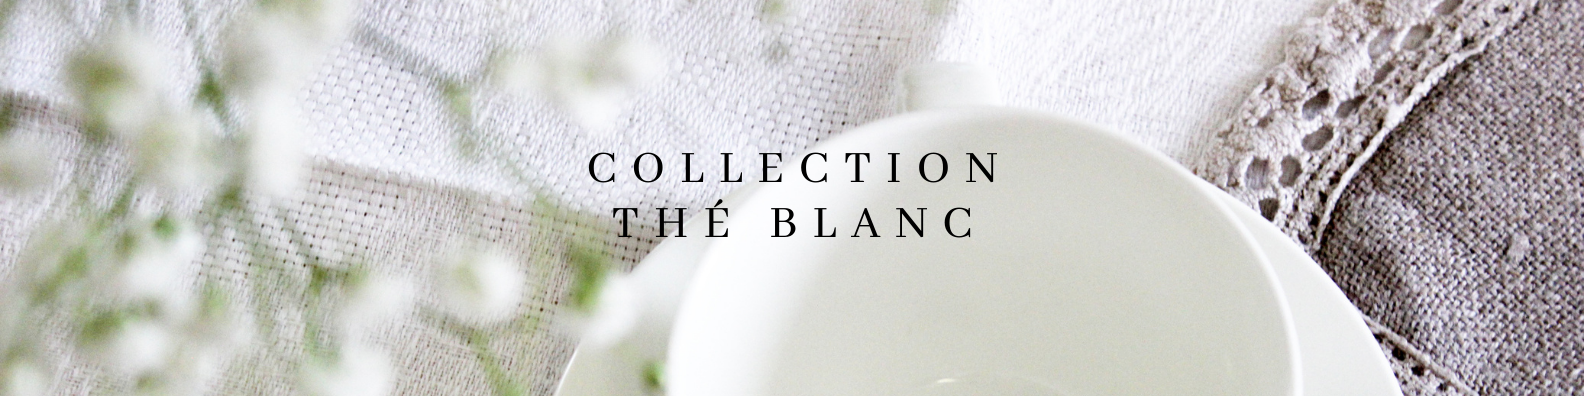 Collection_The_Blanc.png